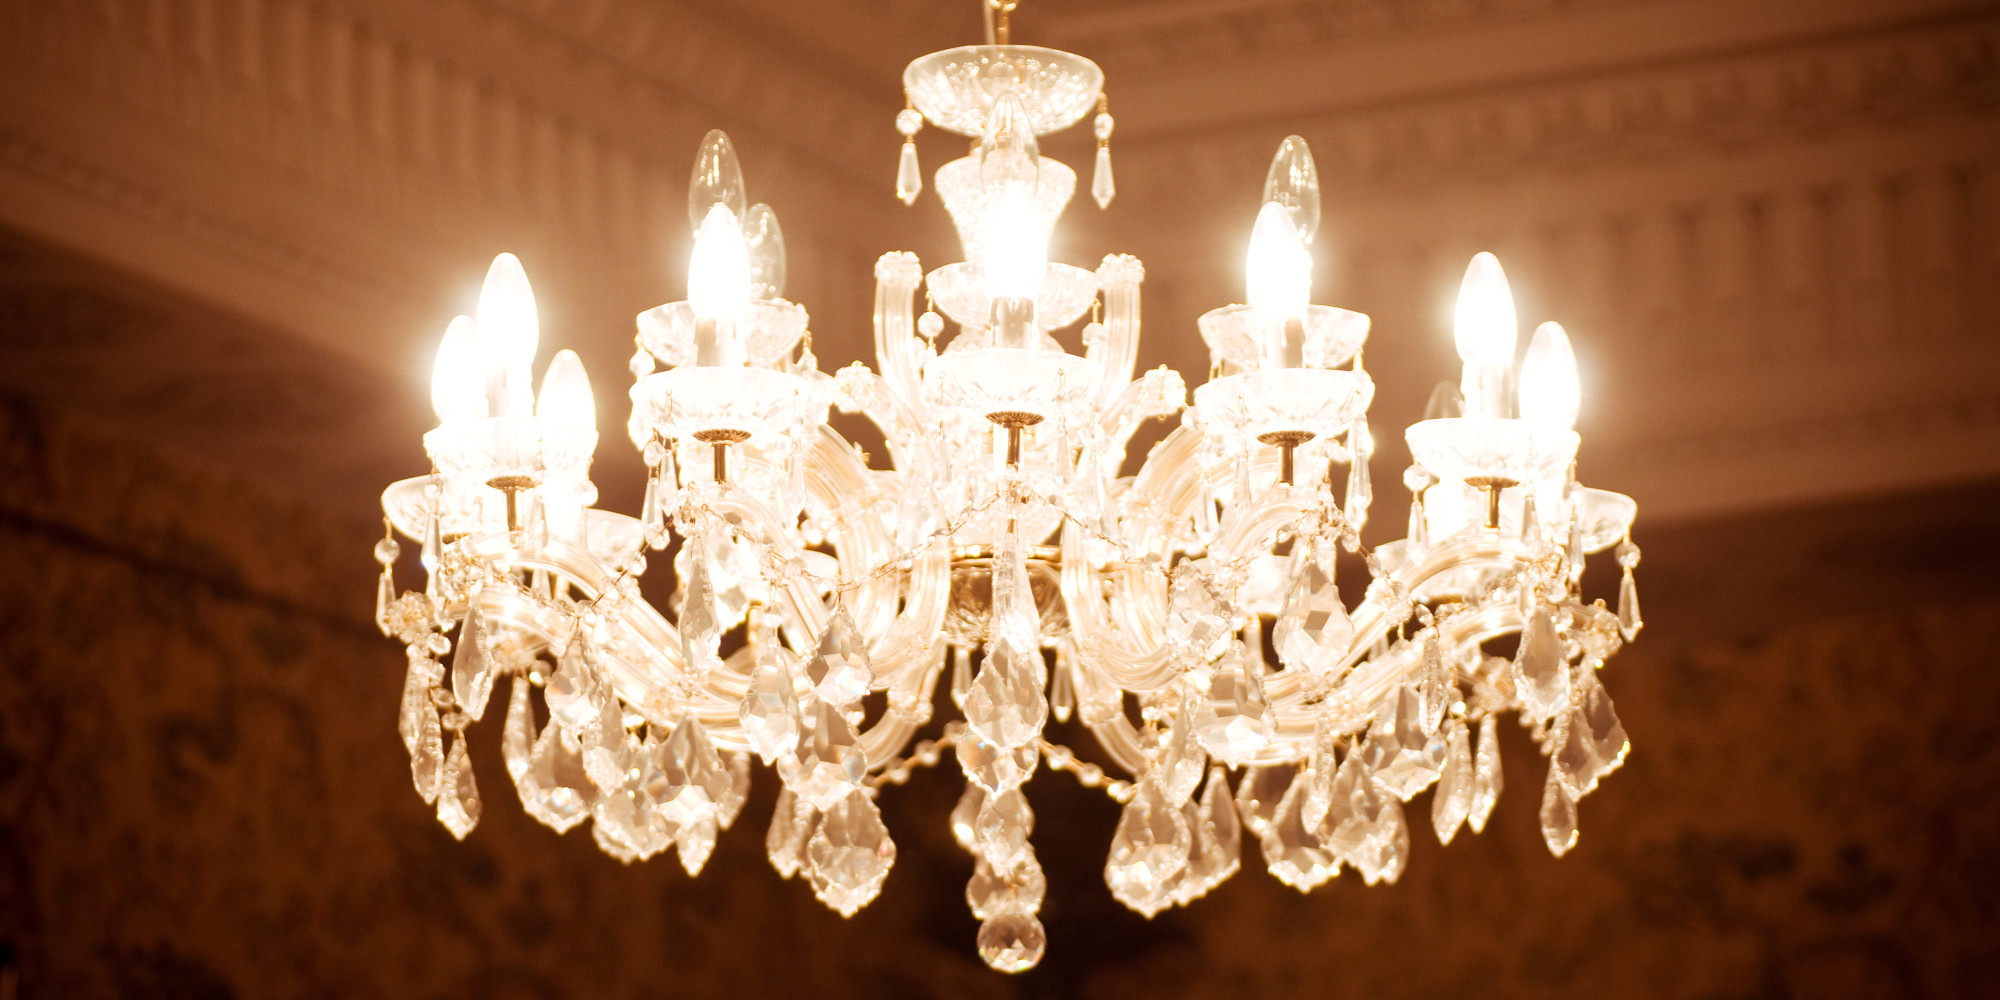 God hates gays who own chandeliers the folks at ivory deene seem god hates gays who own chandeliers the folks at ivory deene seem to think so huffpost arubaitofo Choice Image